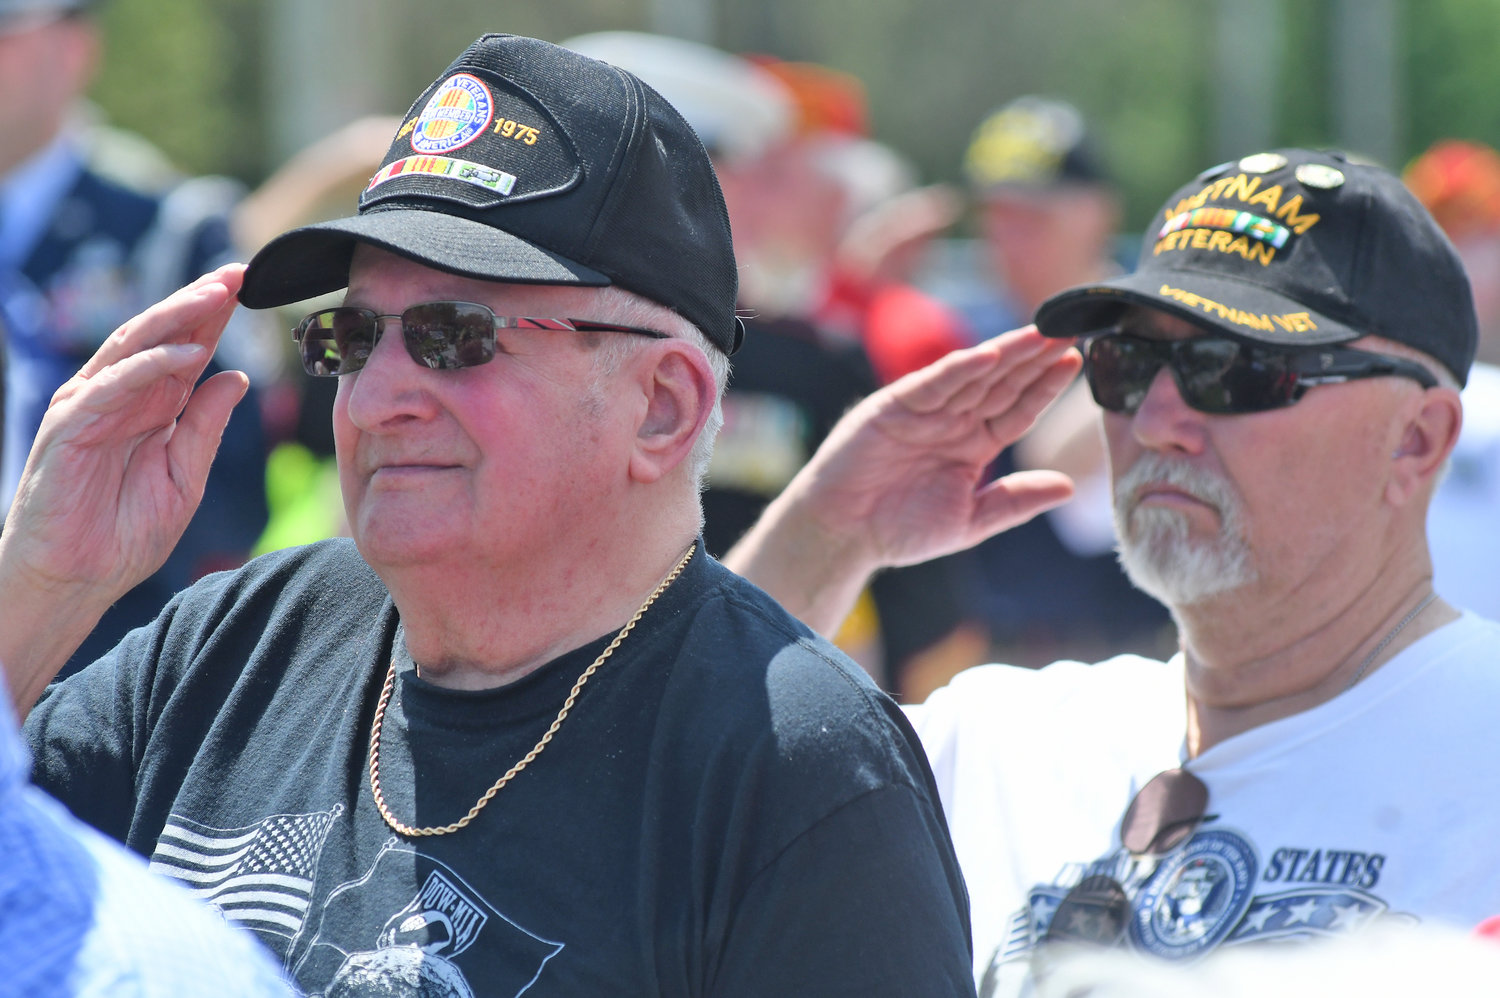 Vietnam vets Gordon Holtzer who served in Vietnam 1968, '69-'71 and Jerry Ingersoll served in Vietnam from 68-73